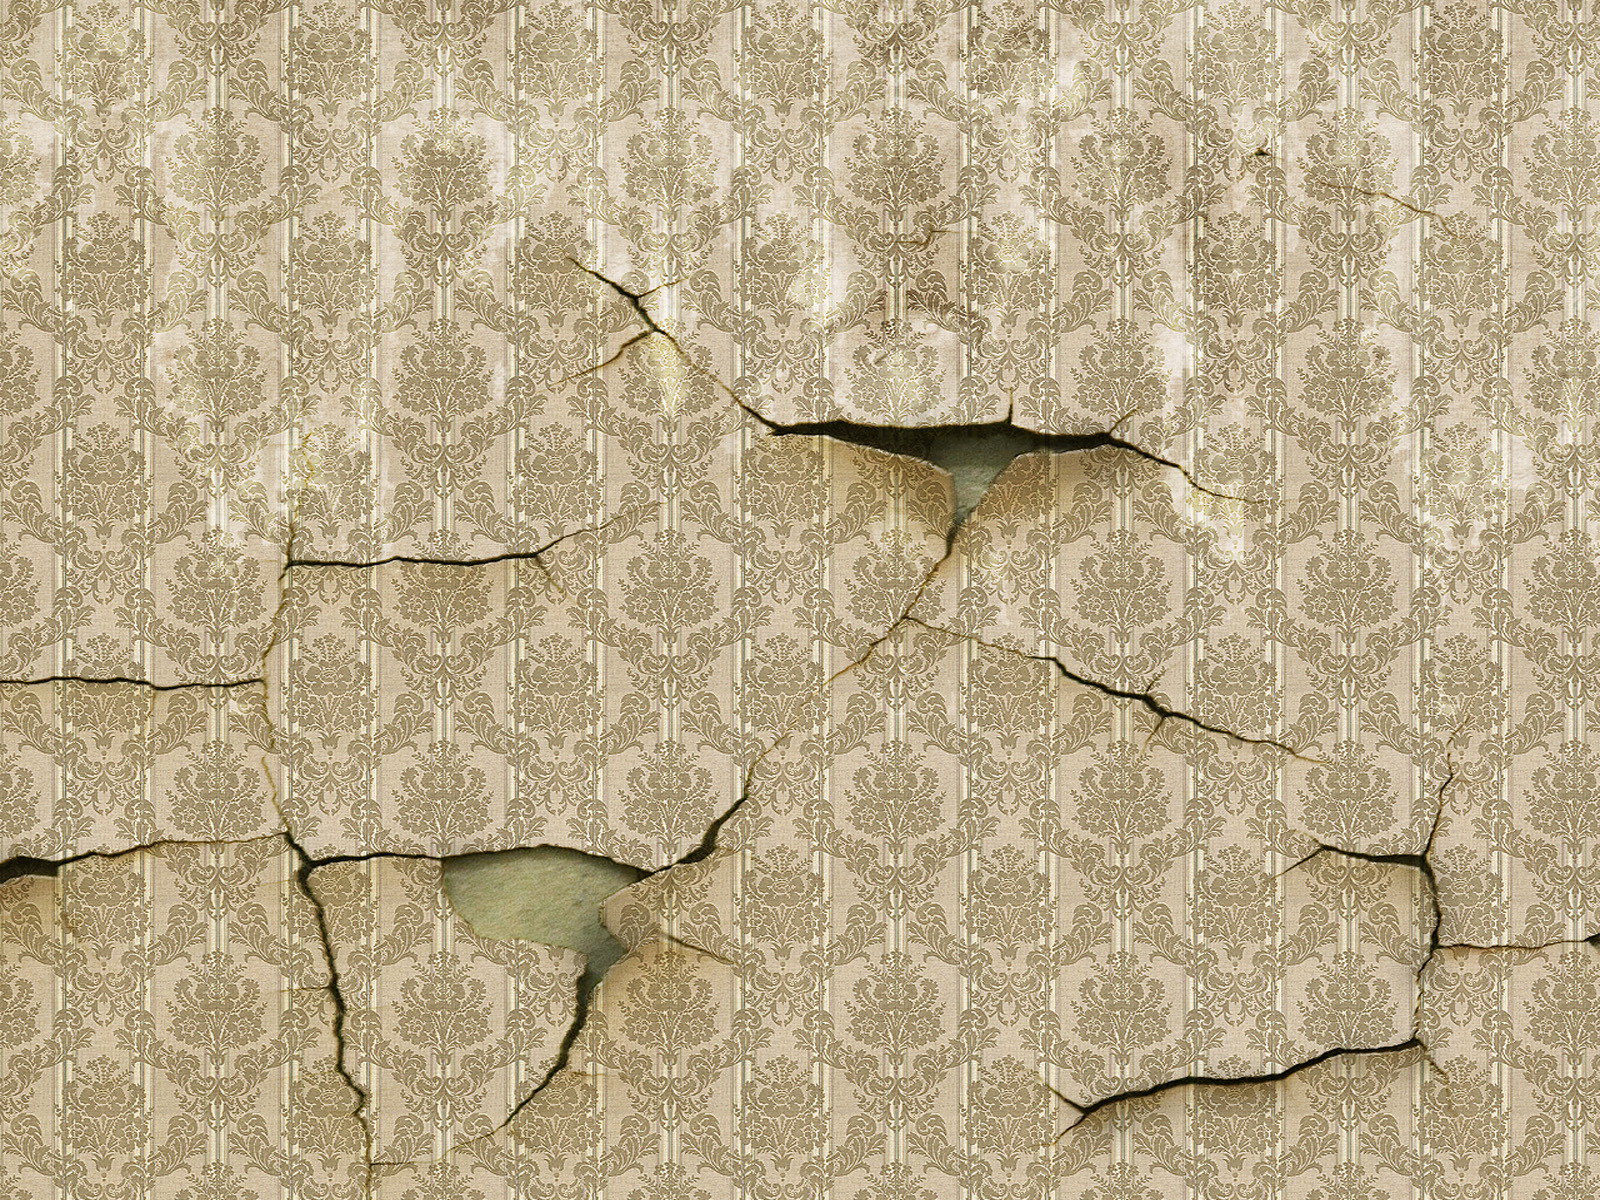 Torn Wallpaper